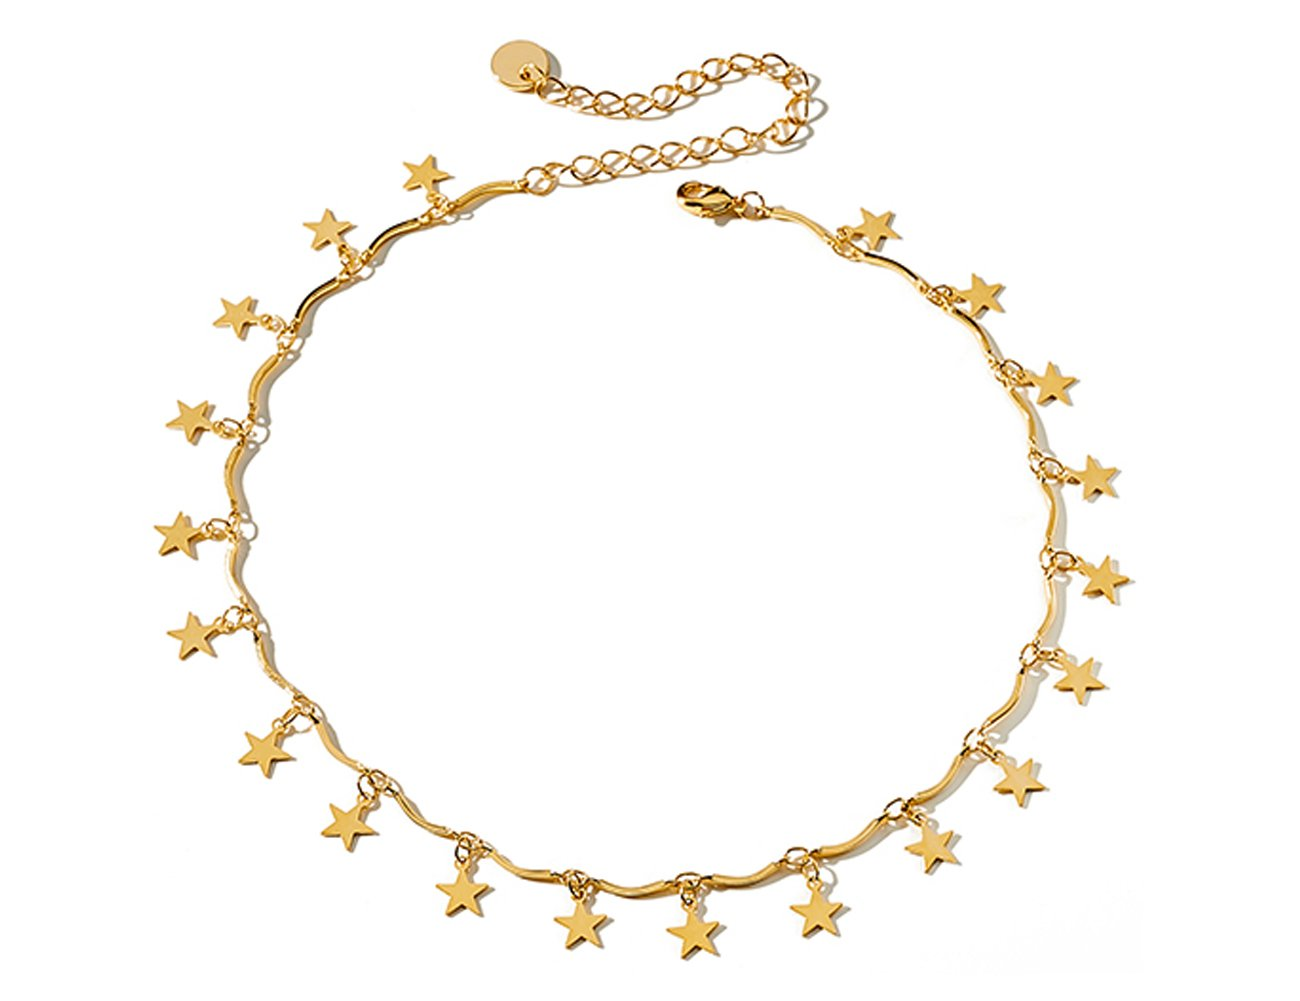 Star Choker Necklace 18K Gold Plated Disc Chain Choker Pendant Necklace for Women Girls, Disc Chain